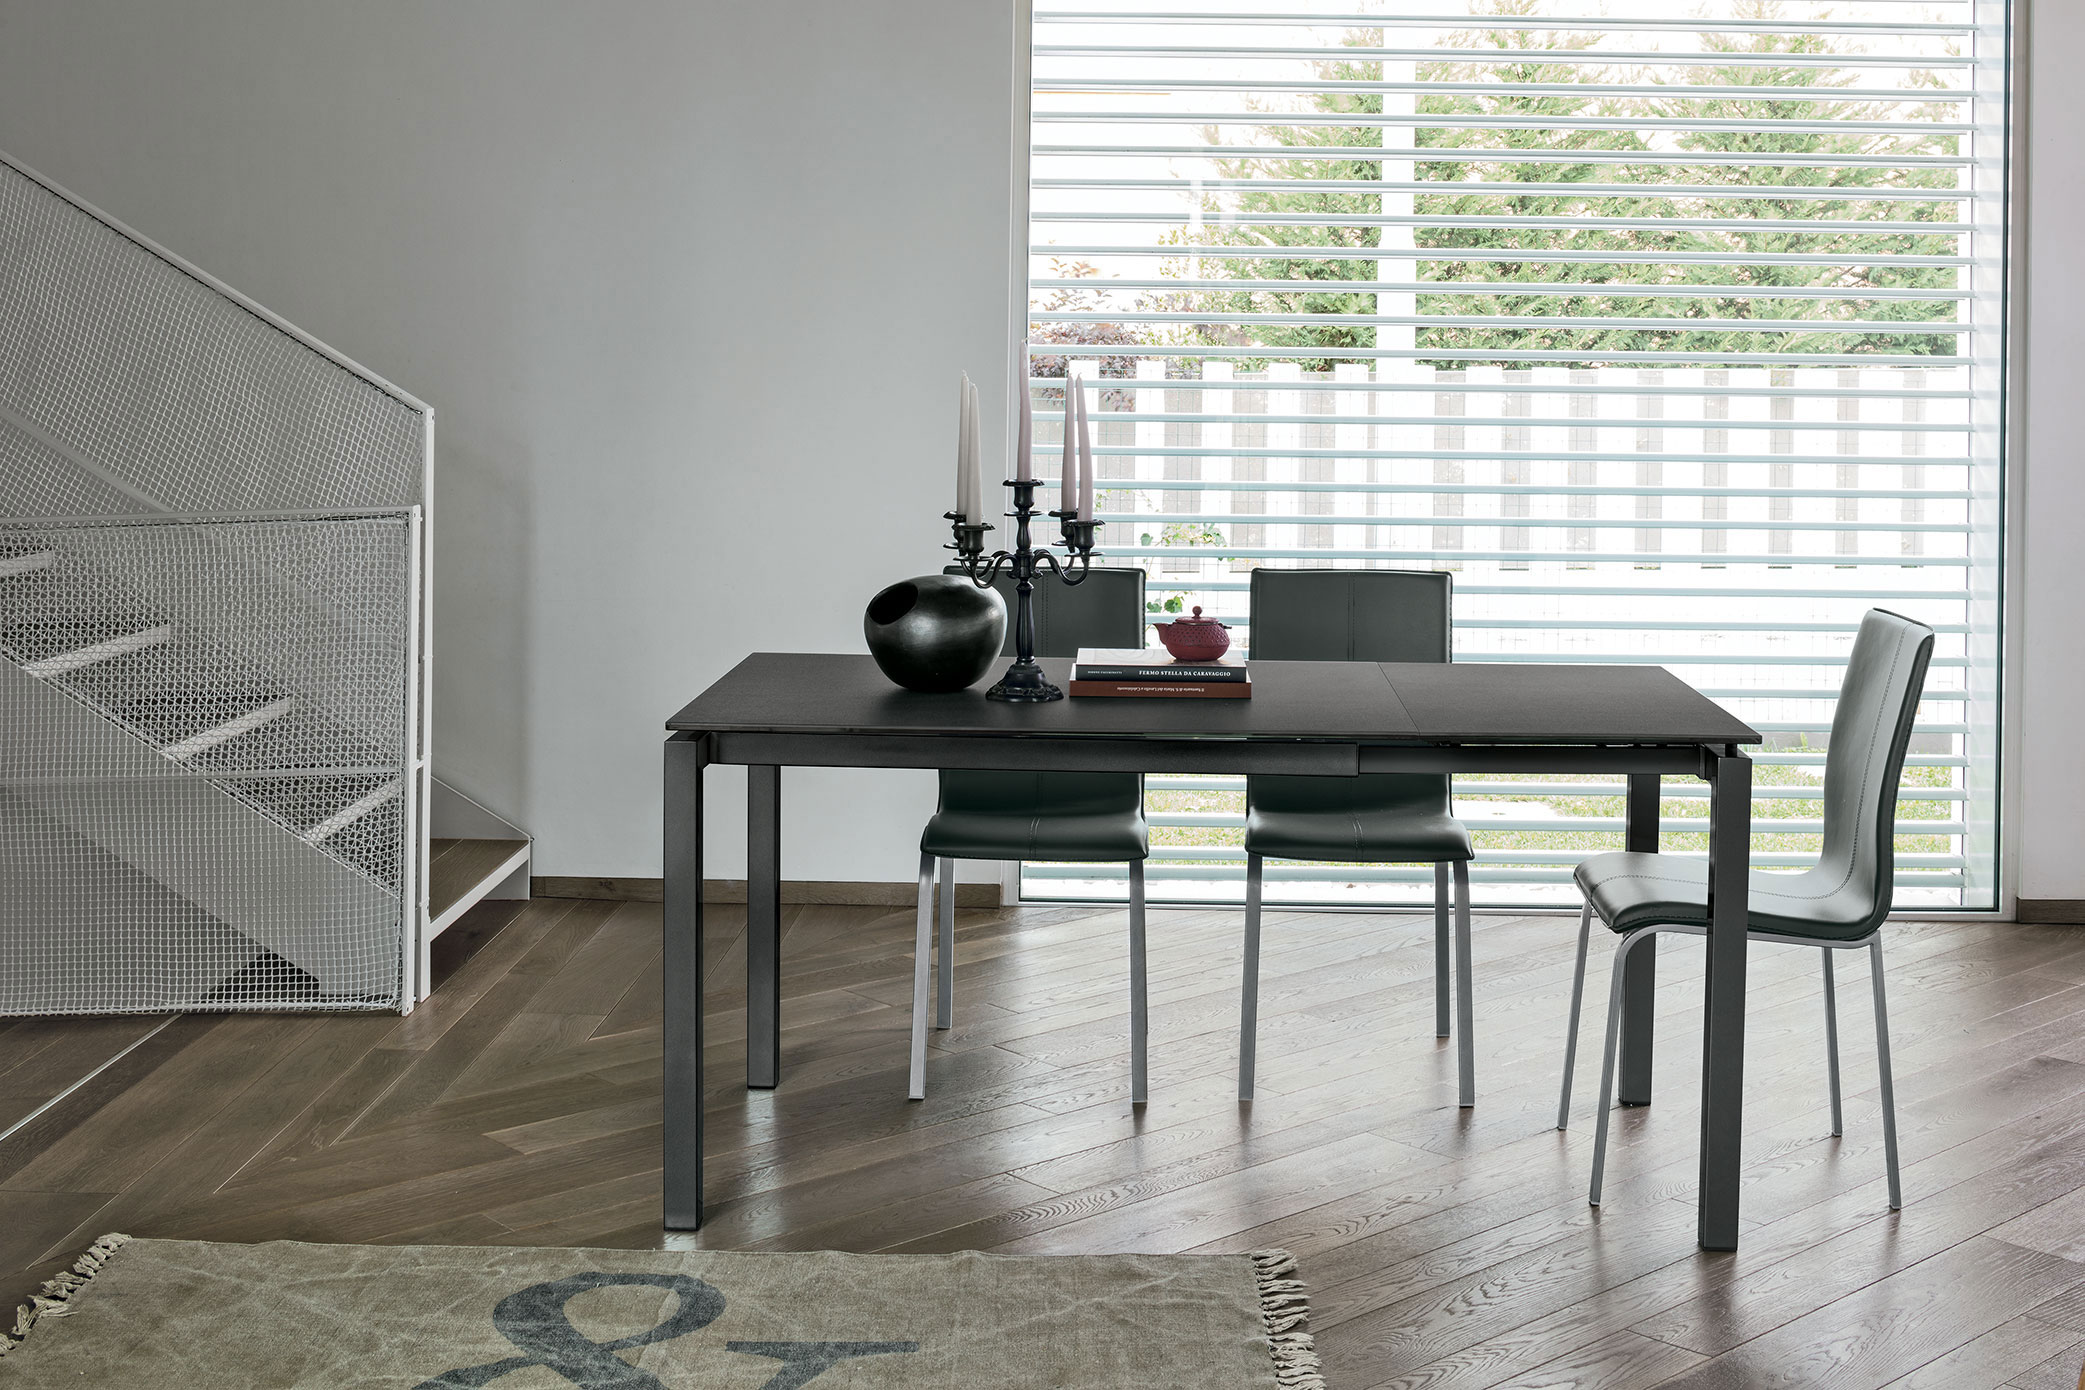 table, modern table, black table, trapezi, chairs, black chairs, karekles, dining table, kitchen table, andreotti, andreotti furniture, epipla, furniture, limassol, cyprus